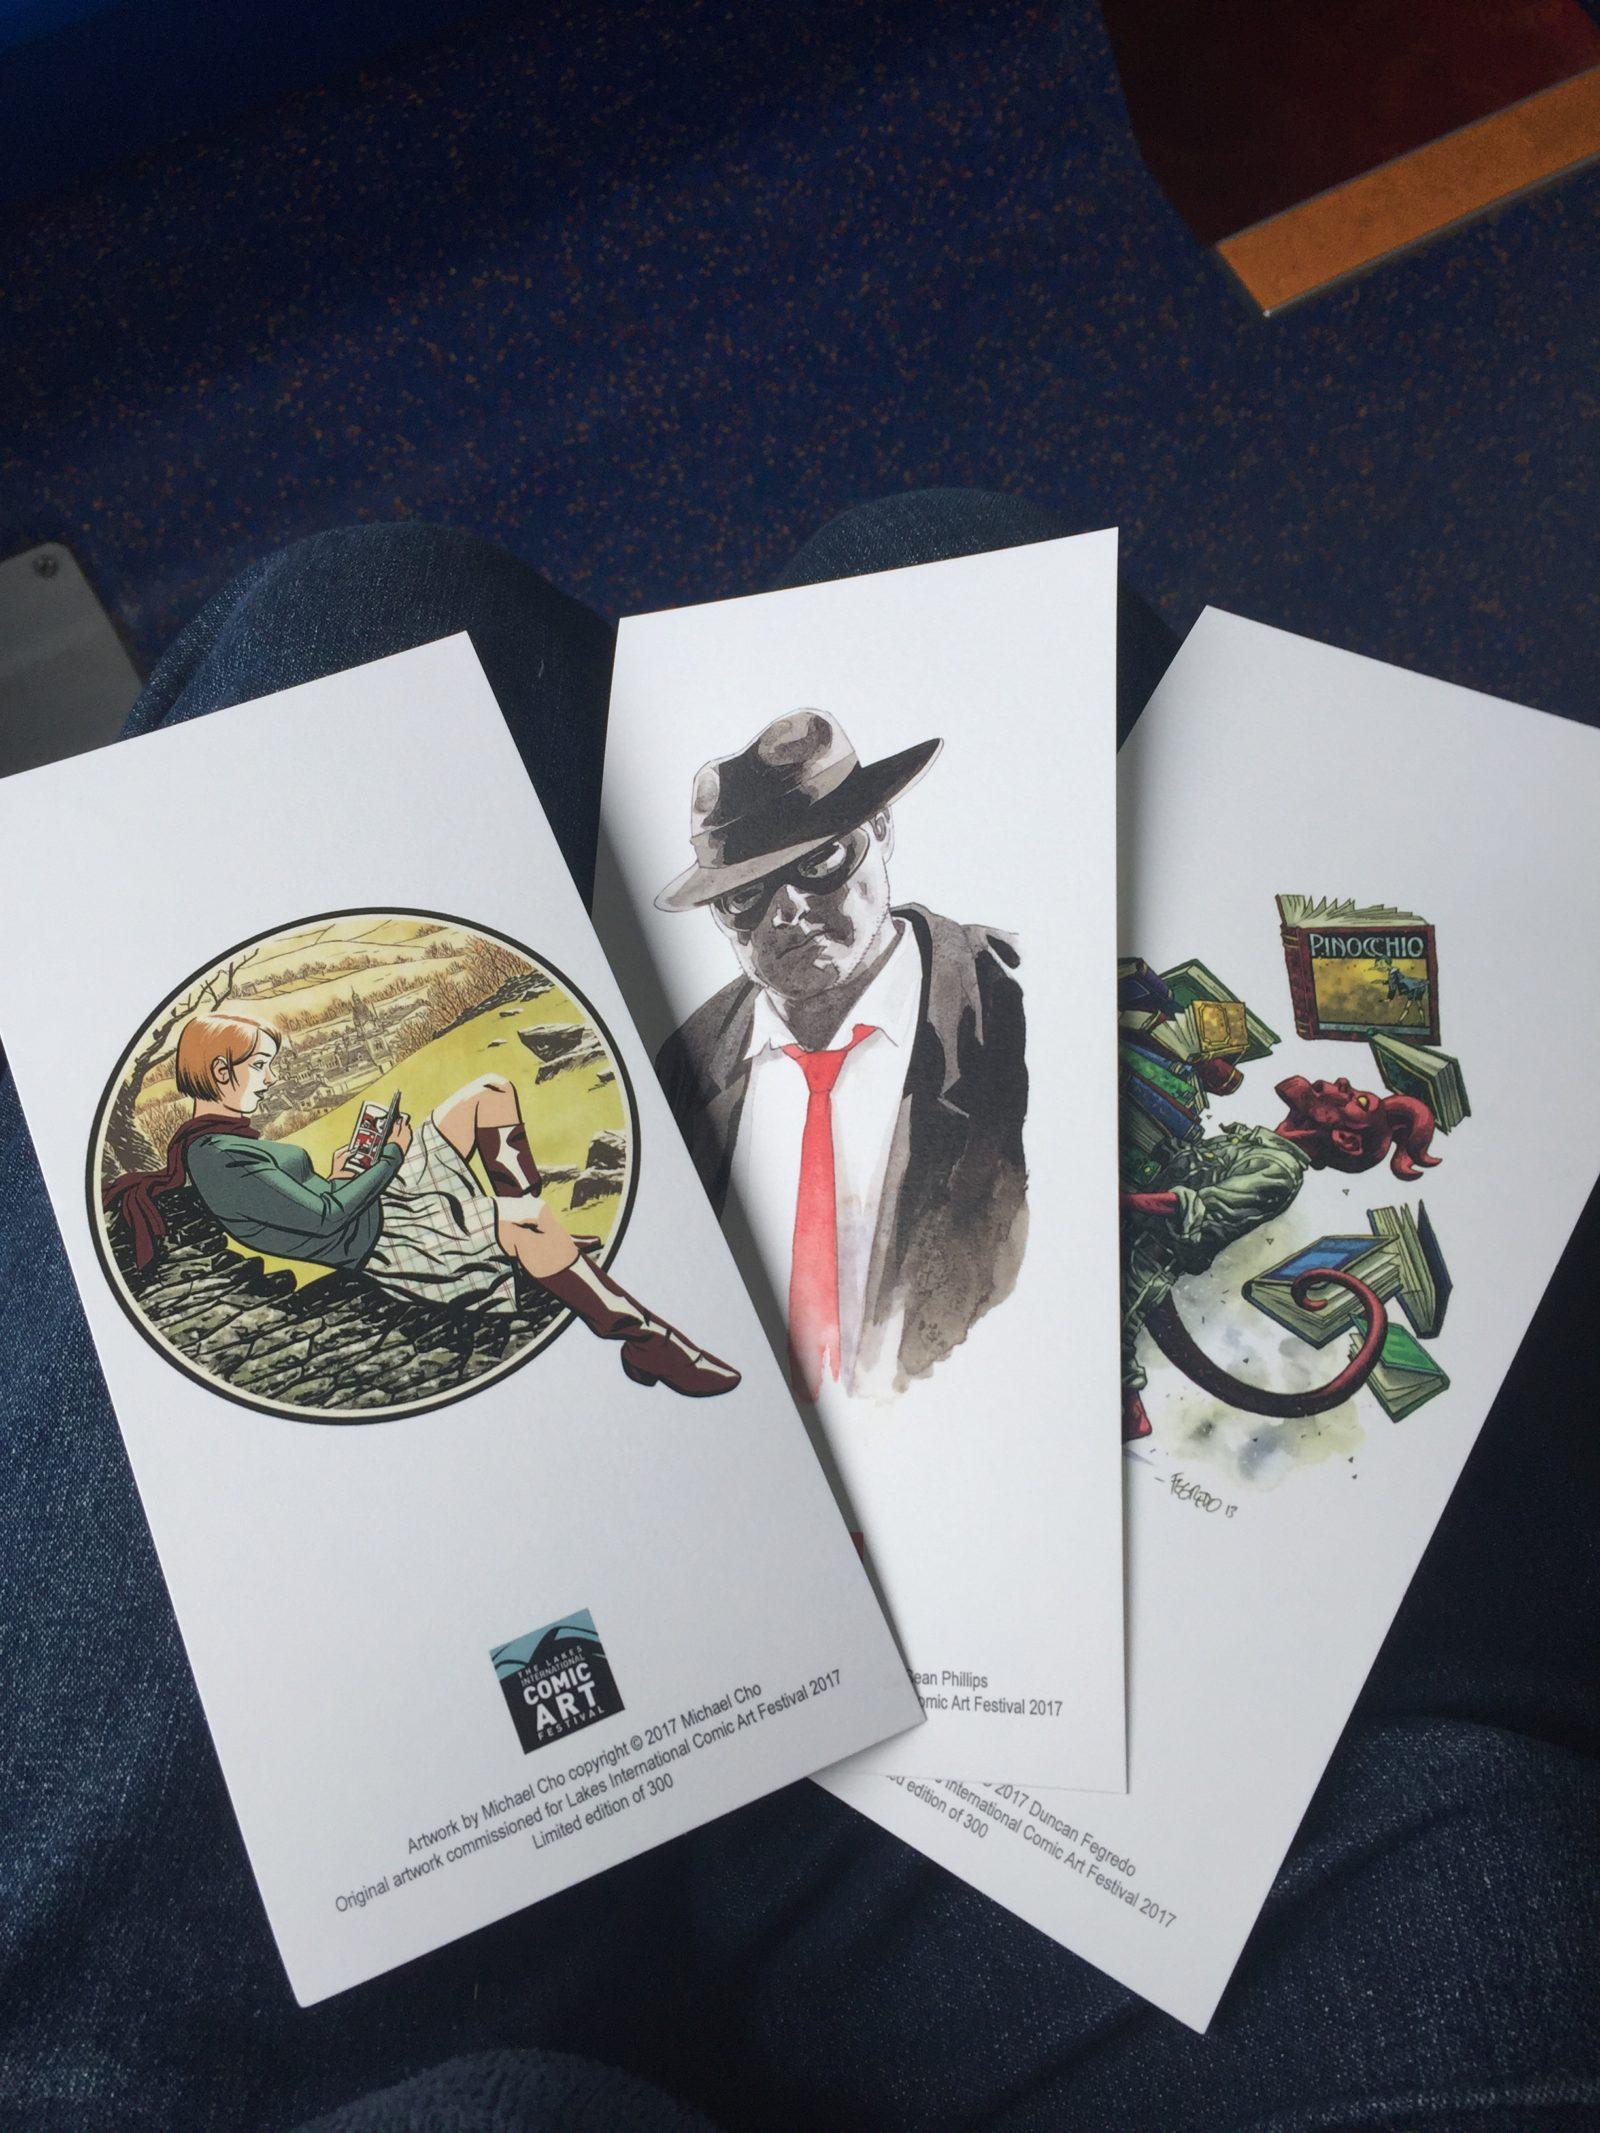 Lakes International Comic Art Festival Goodie Bag 2017 - Art Cards